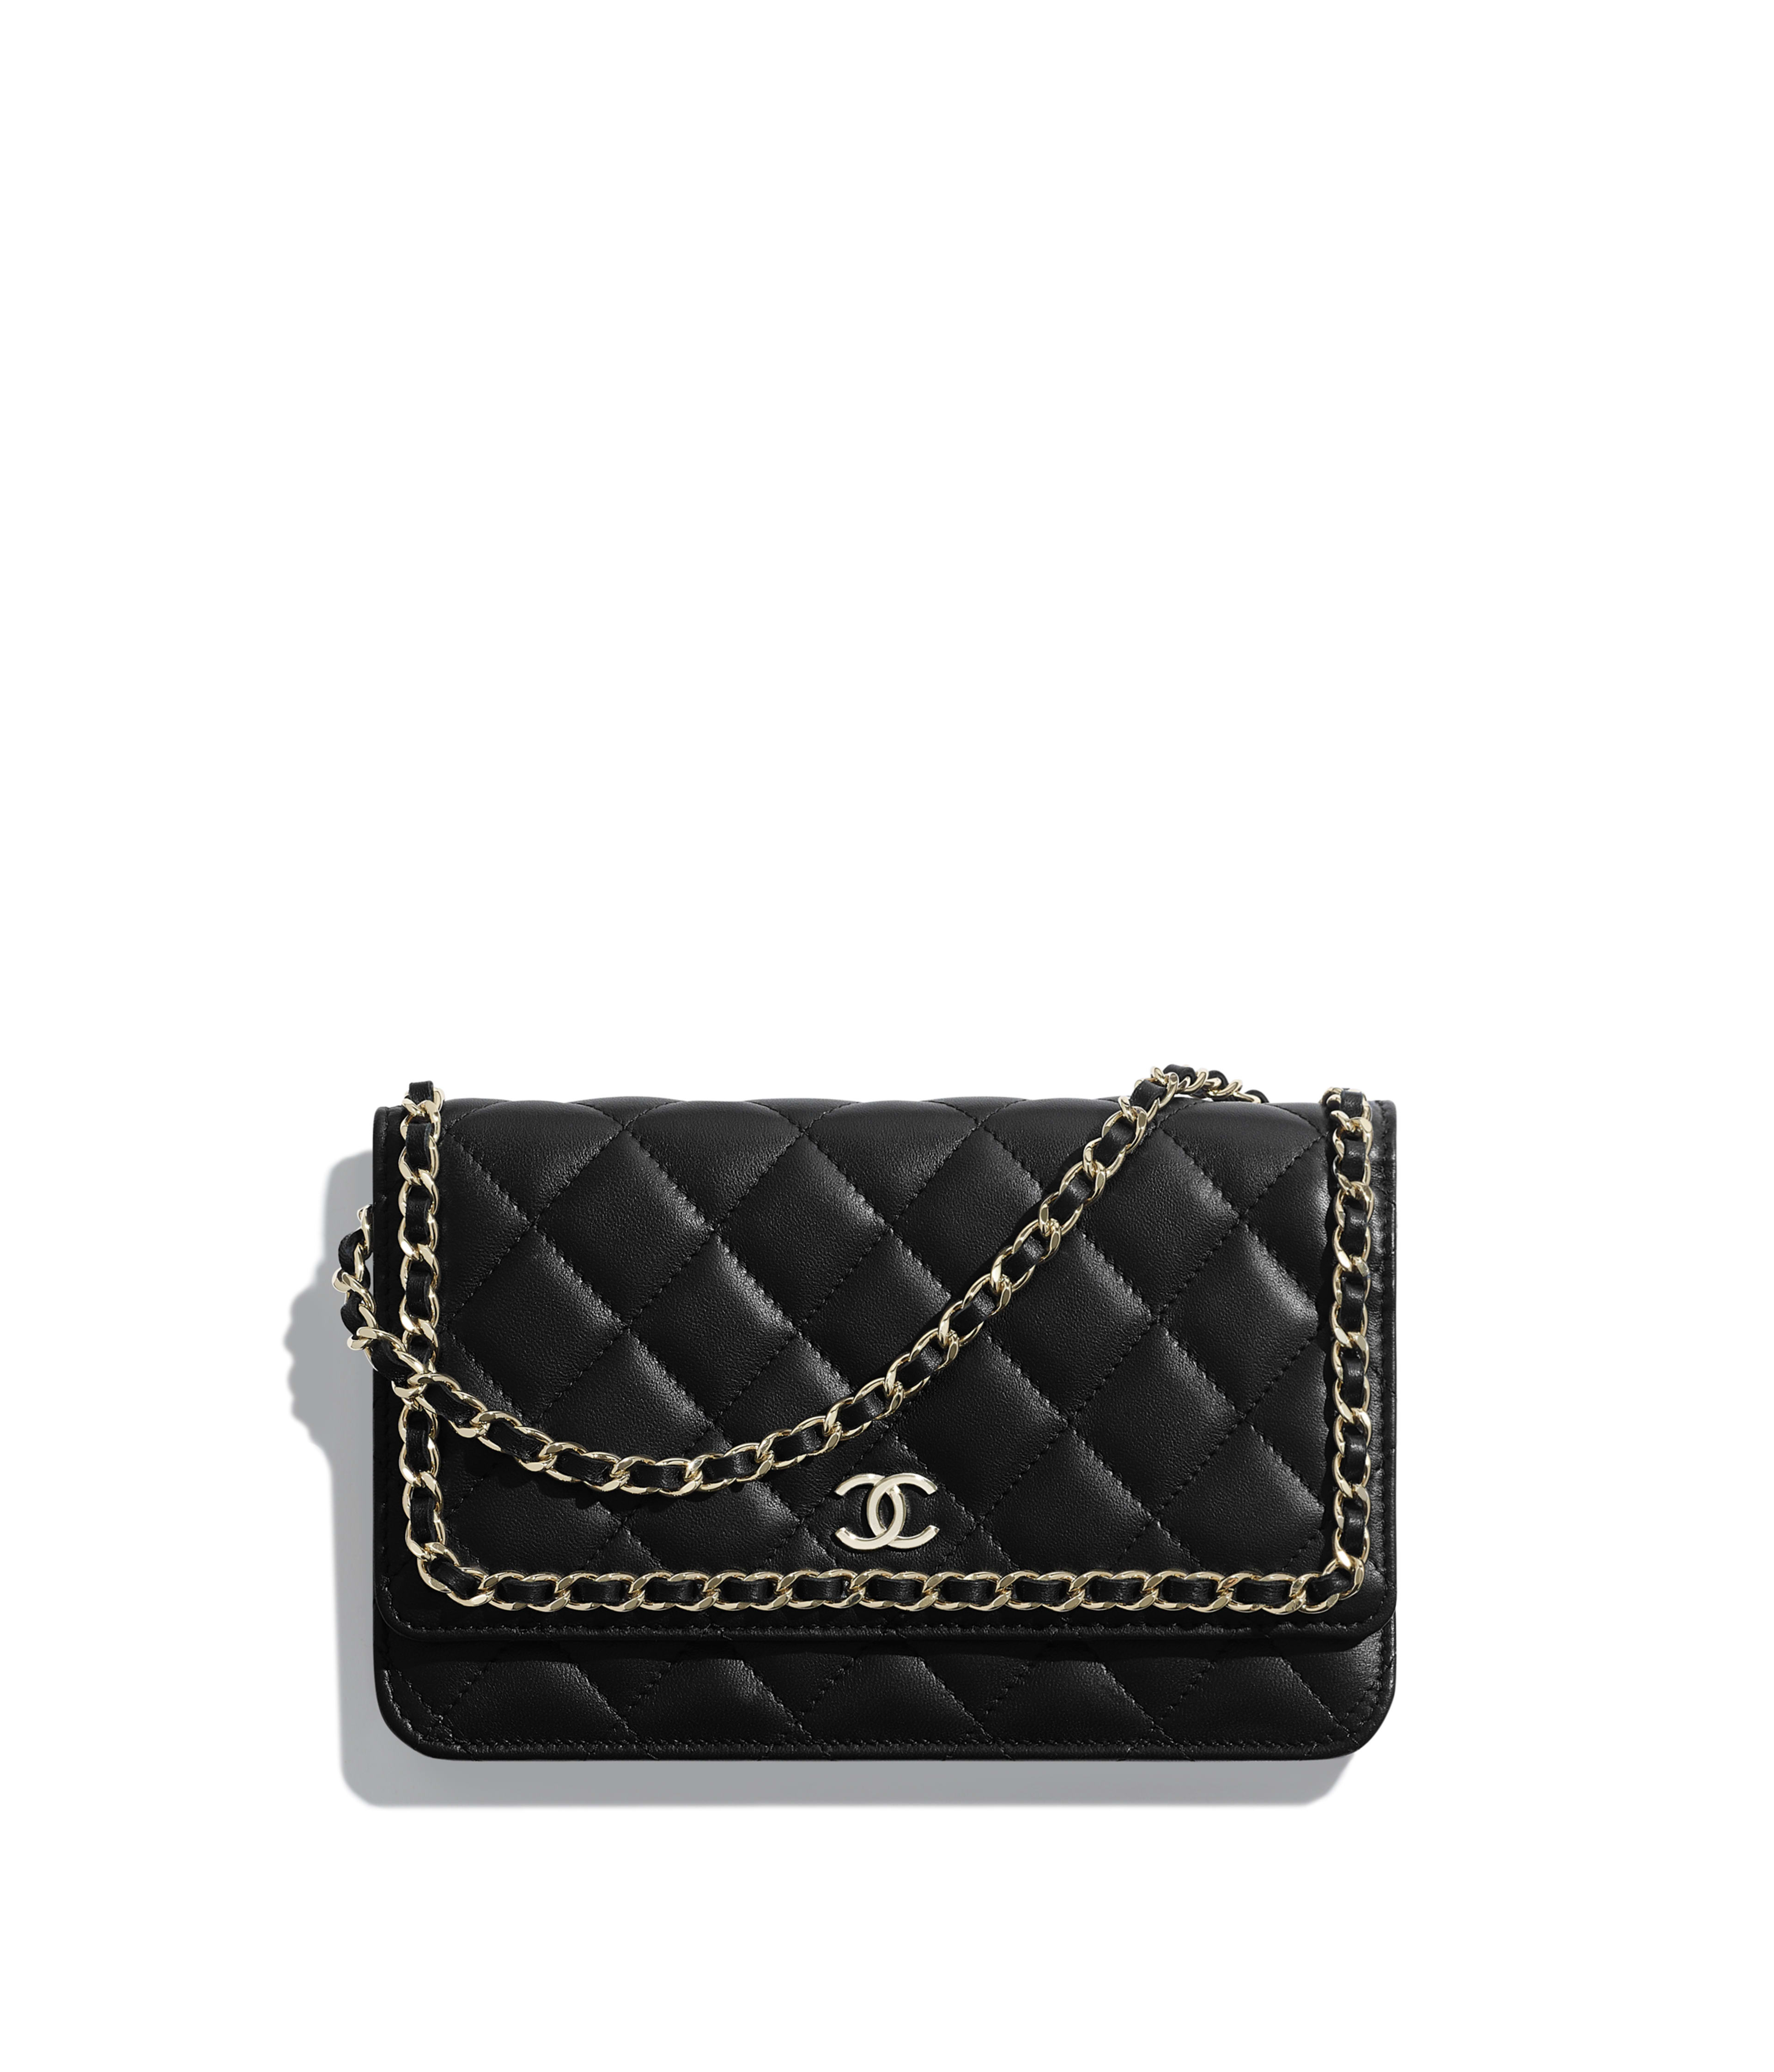 sale retailer b5855 043b9 Small leather goods - Fashion | CHANEL